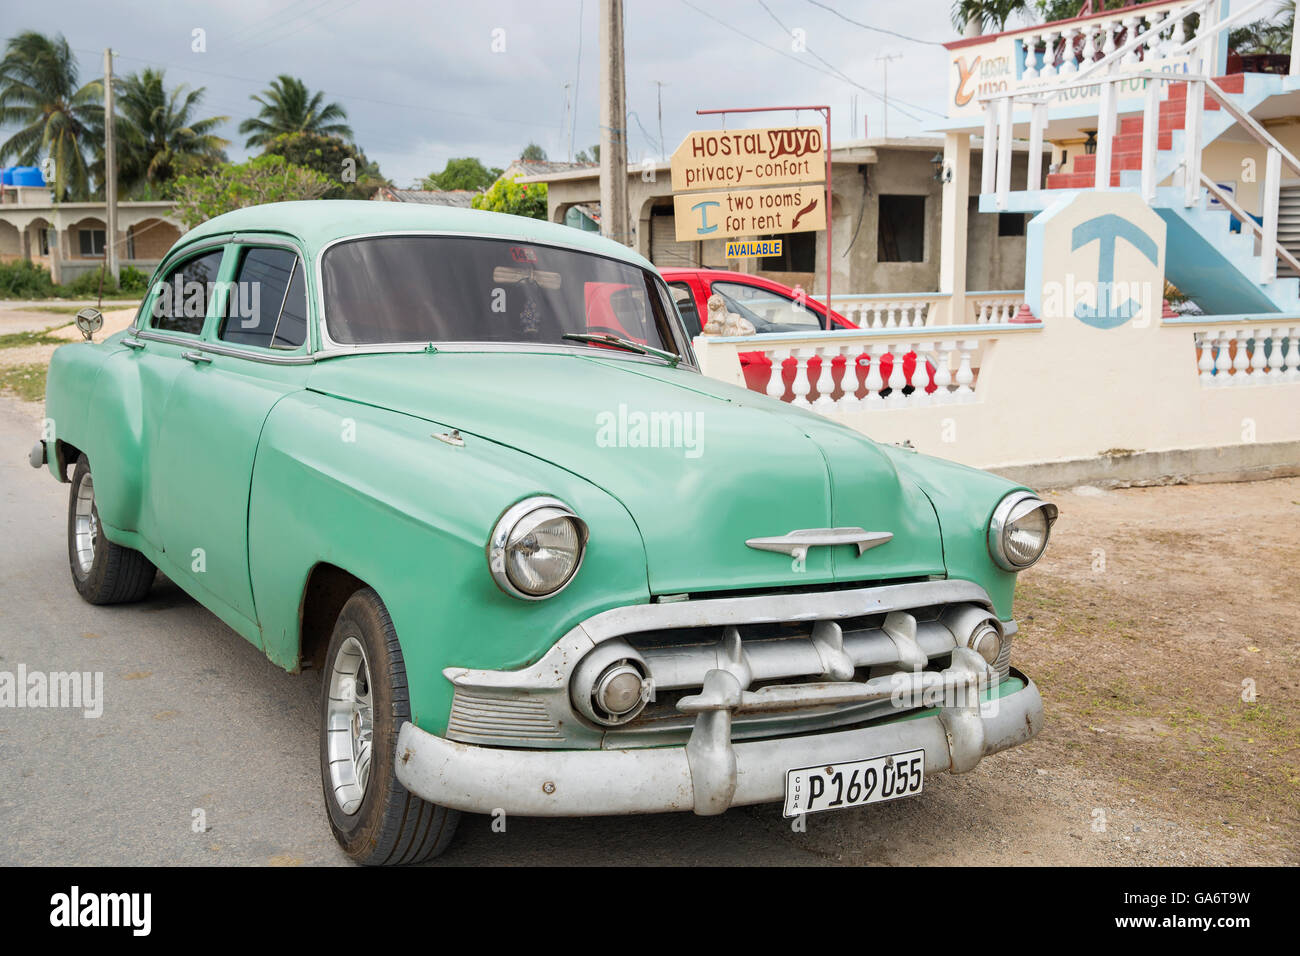 Vintage Chevy taxi parked outside a family-run hostel with rooms for rent to tourists in Playa Larga, Cuba. - Stock Image